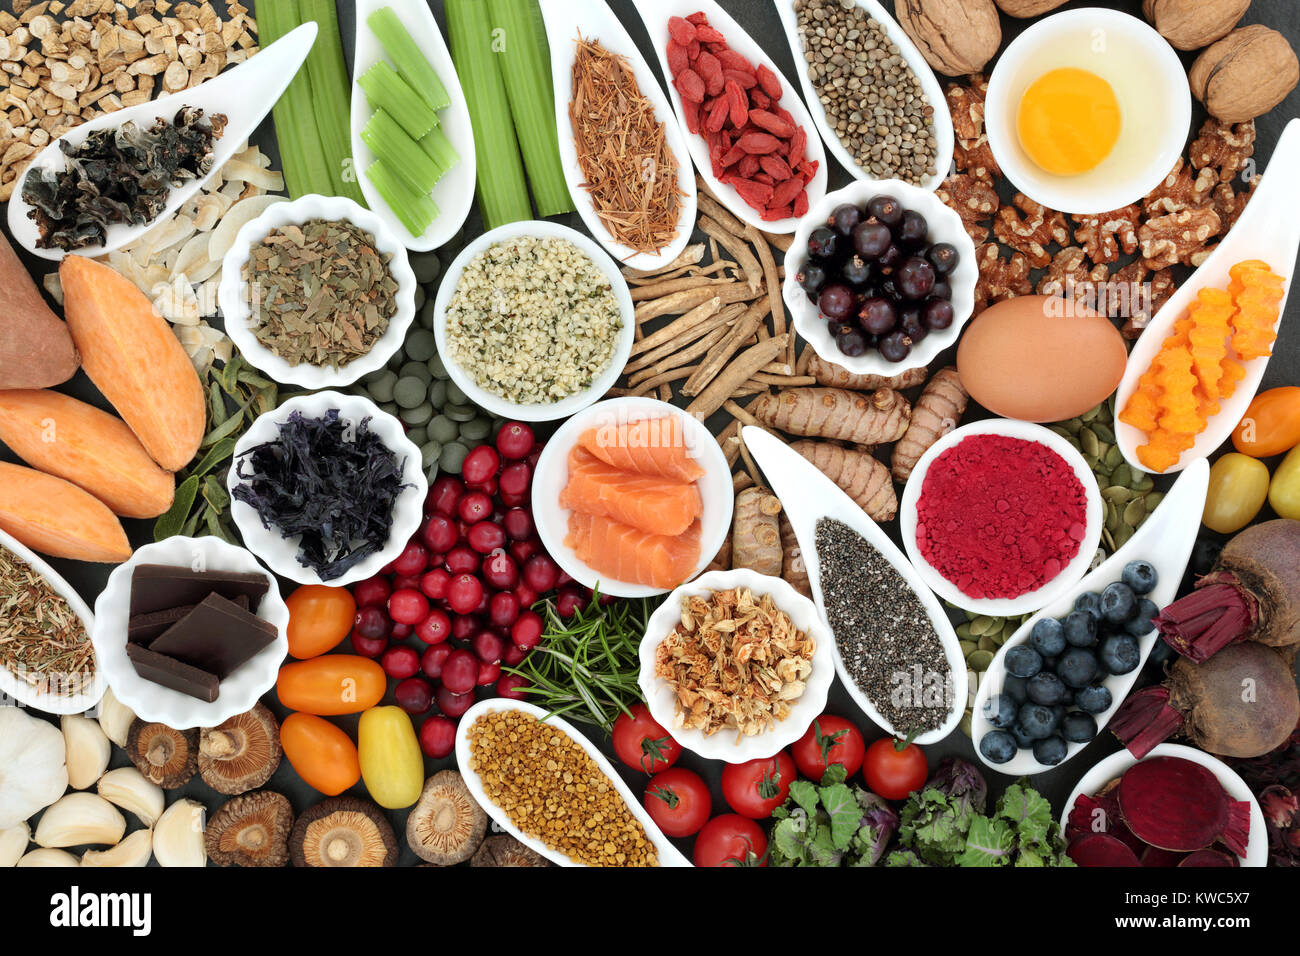 Health food to improve brain cognitive functions. Super foods concept very high in minerals, vitamins, antioxidants, - Stock Image